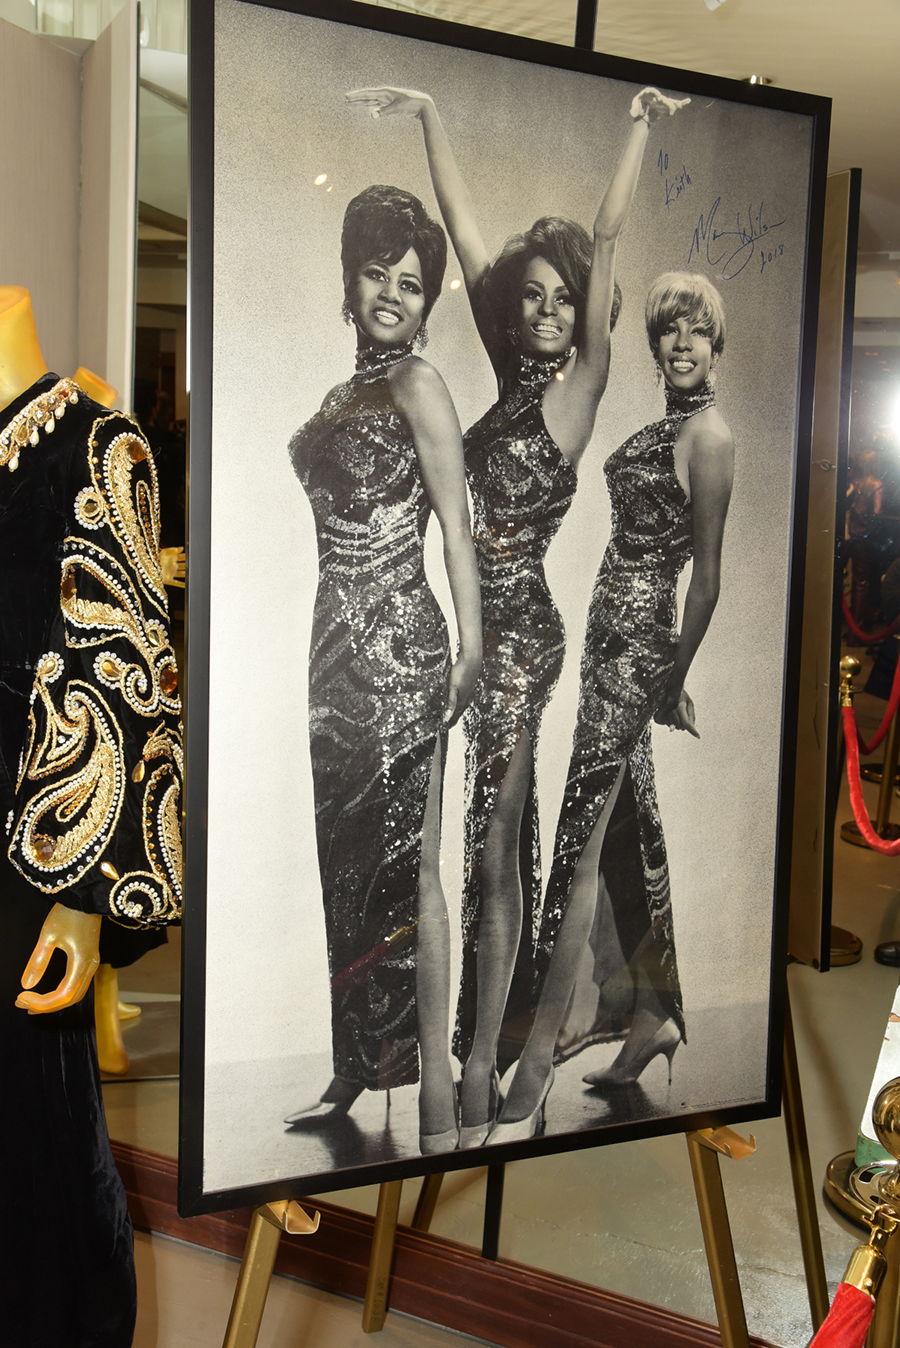 The Supremes portrait with Florence Ballard, Diana Ross and Mary Wilson.